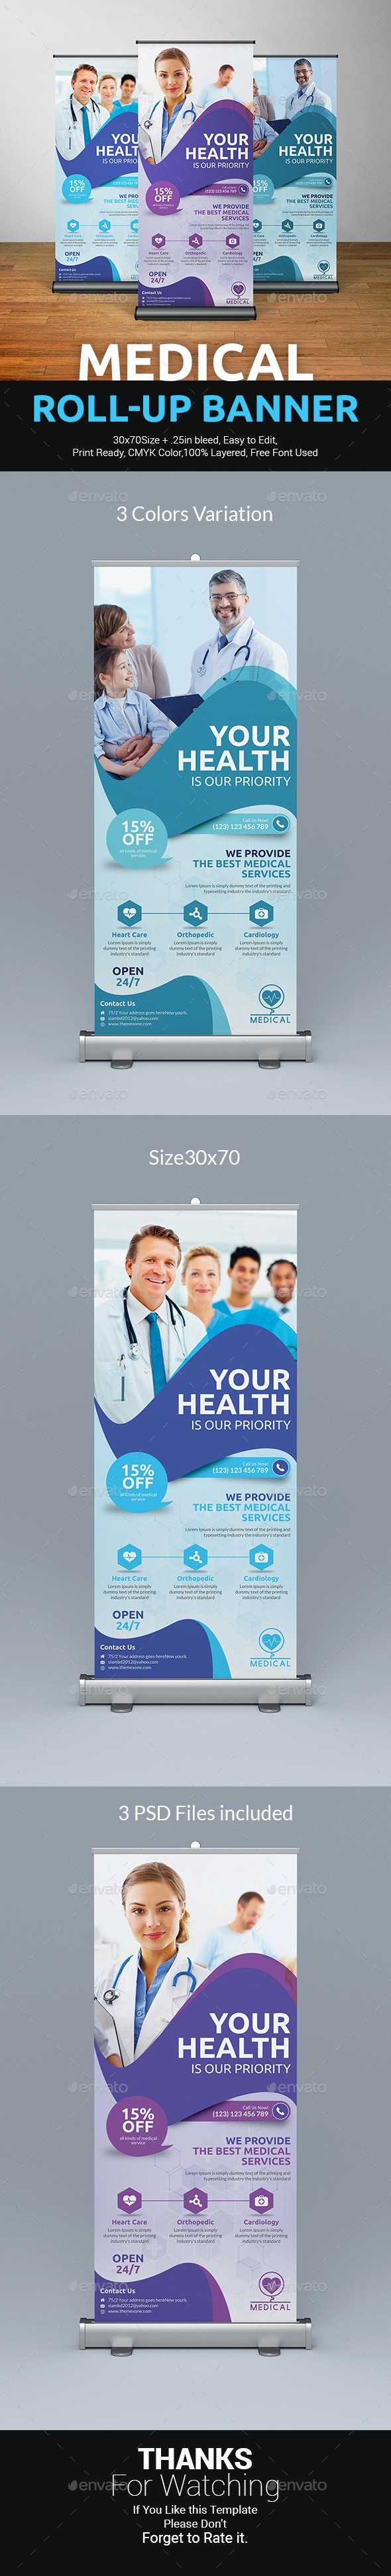 Medical Roll-Up Banner Template - Signage Print Templates